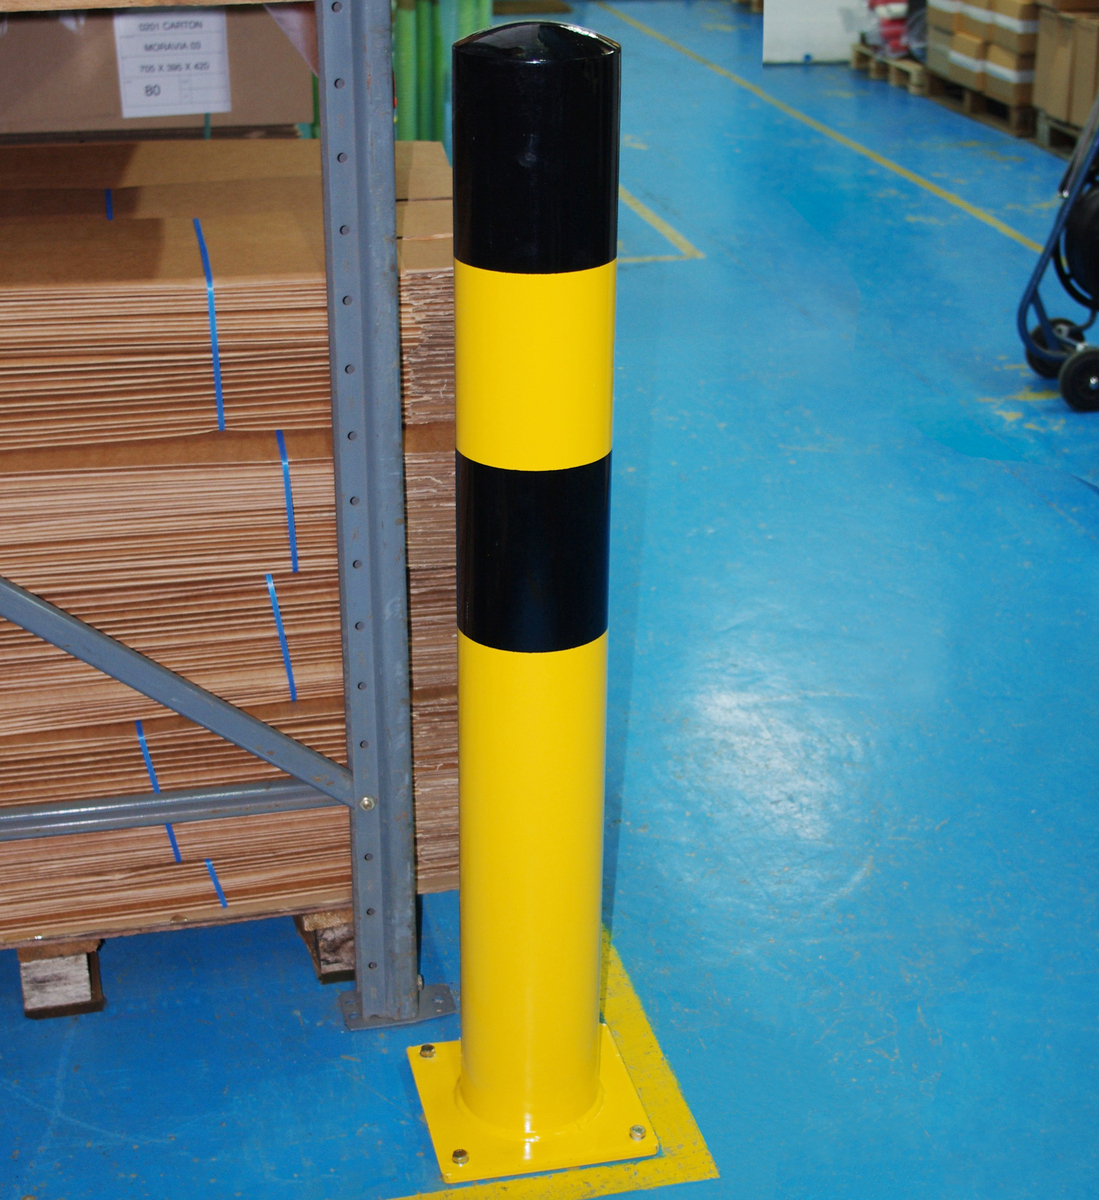 Steel Bollard Extra Tall Heavy Duty - Hi Viz. designed to protect property. image